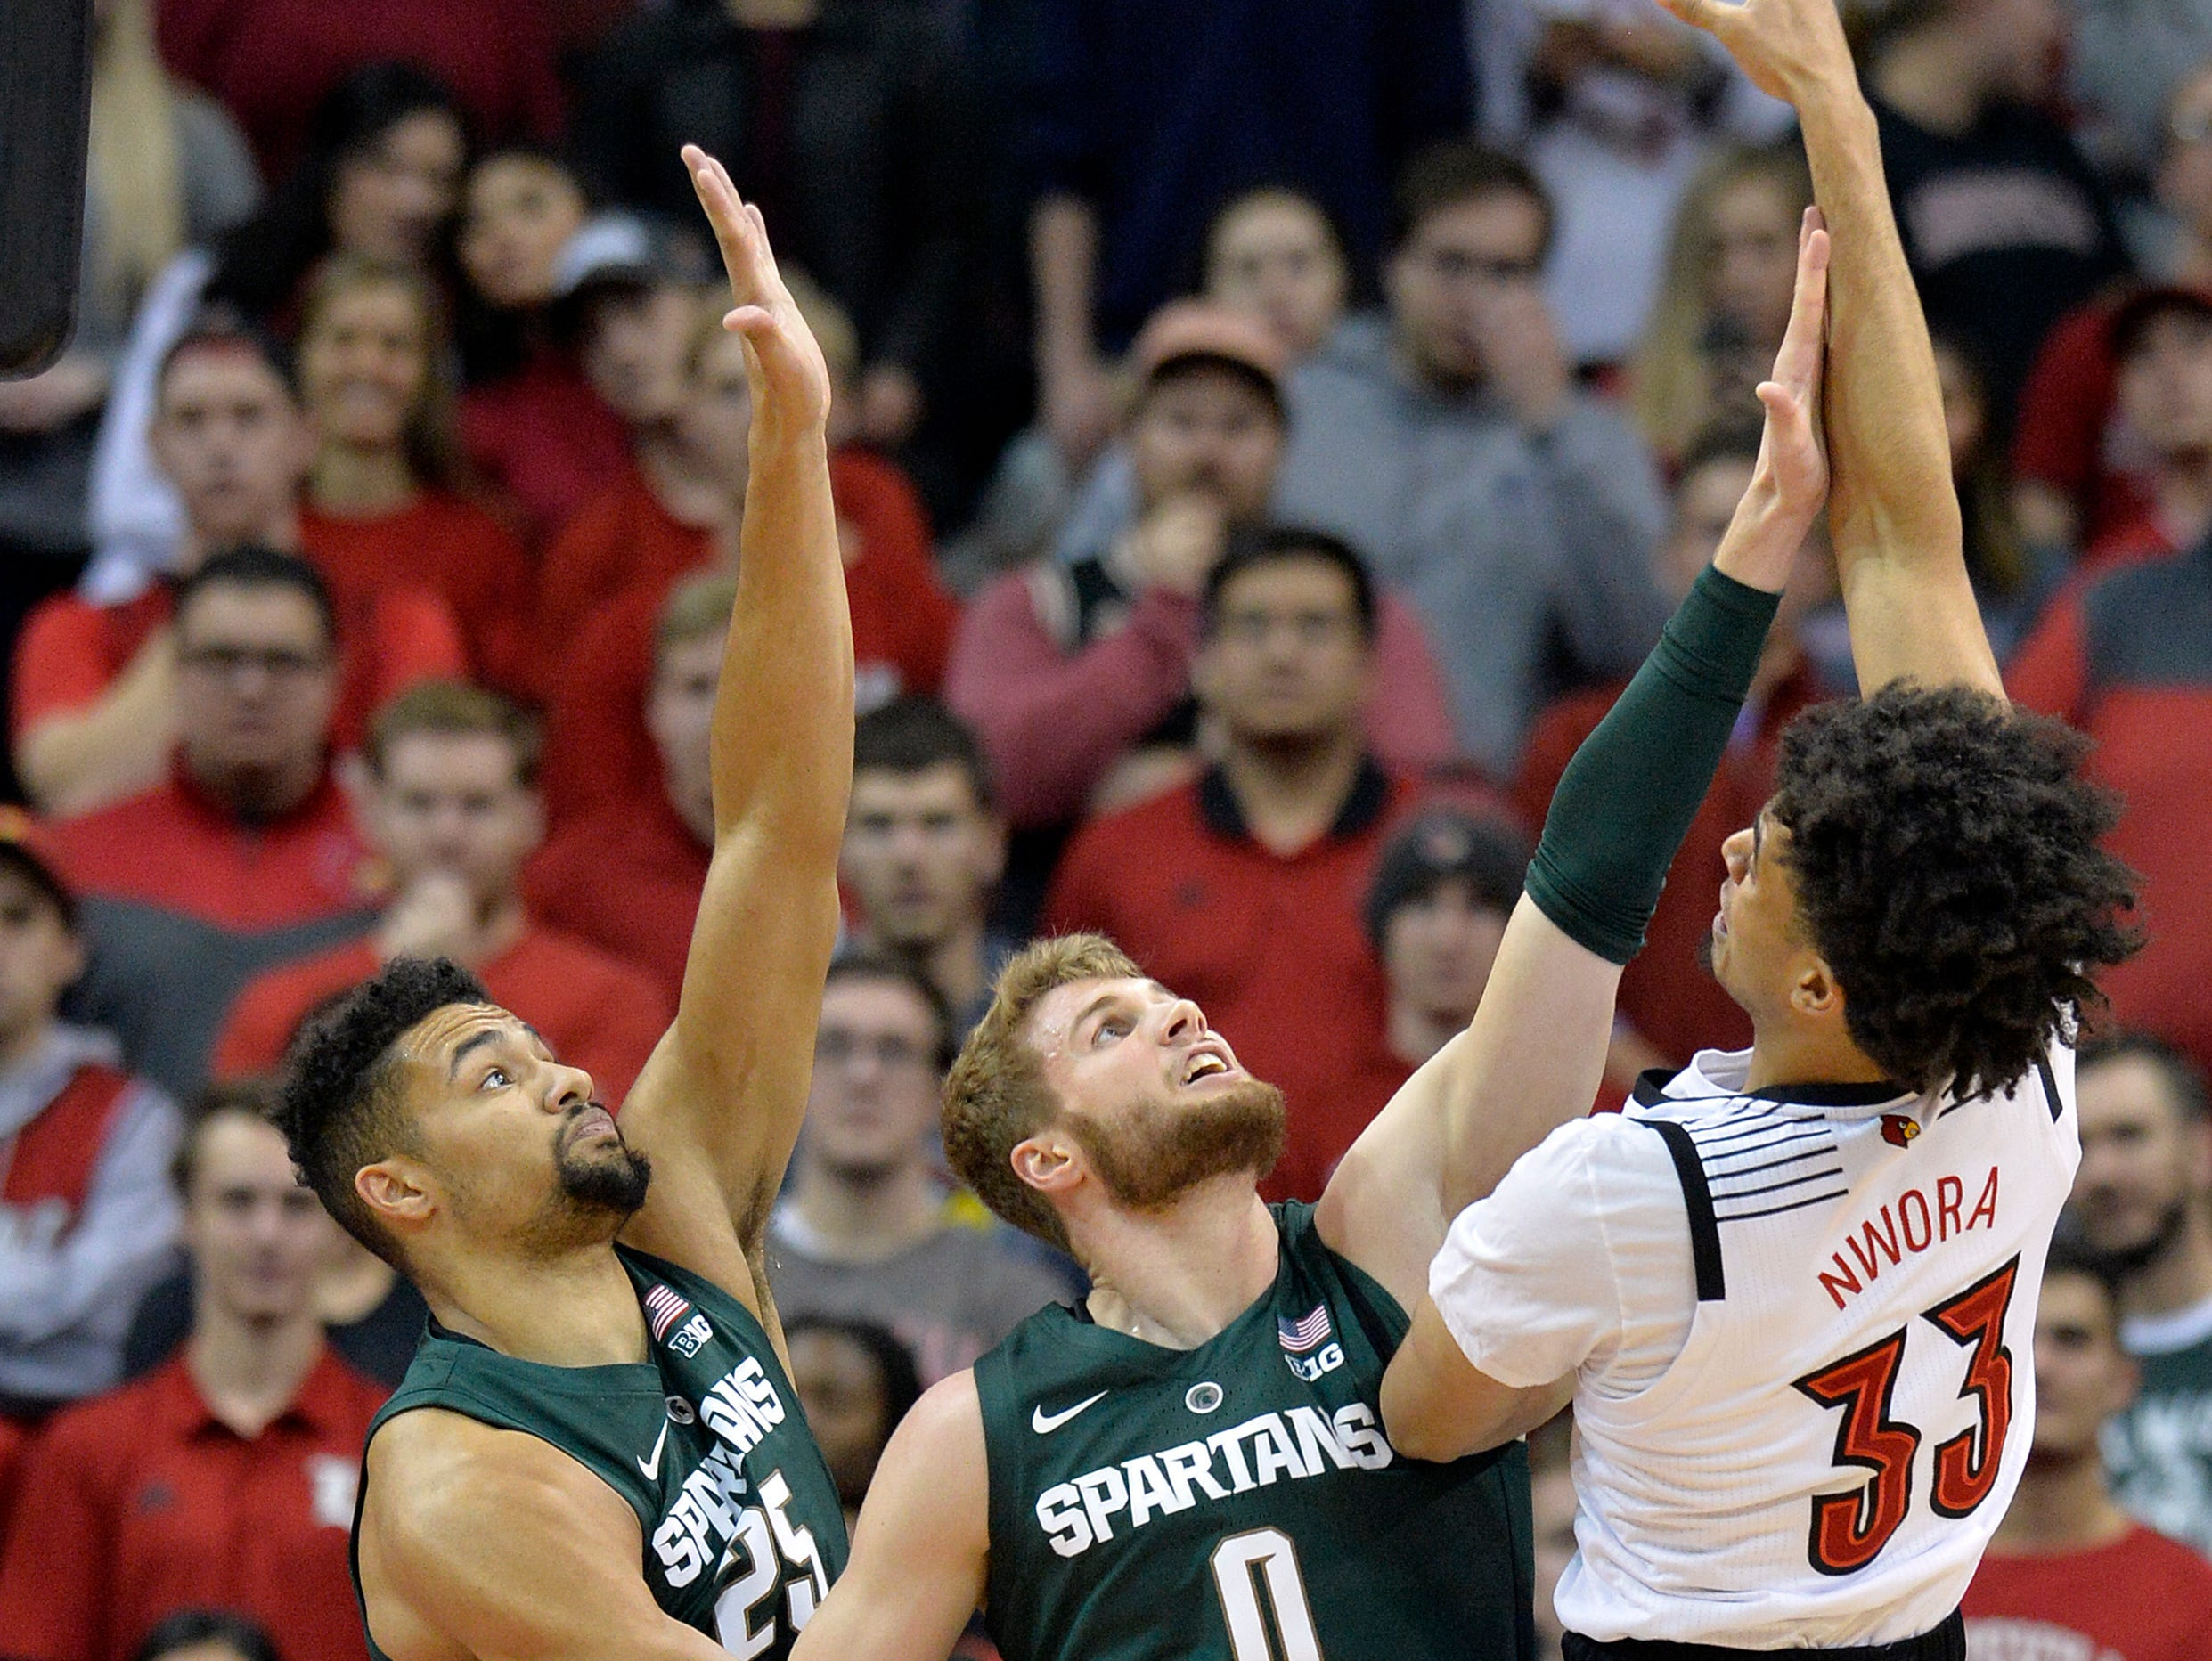 Louisville forward Jordan Nwora (33) shoots over the defense of Michigan State forward Kenny Goins (25) and forward Kyle Ahrens (0) during the first half.